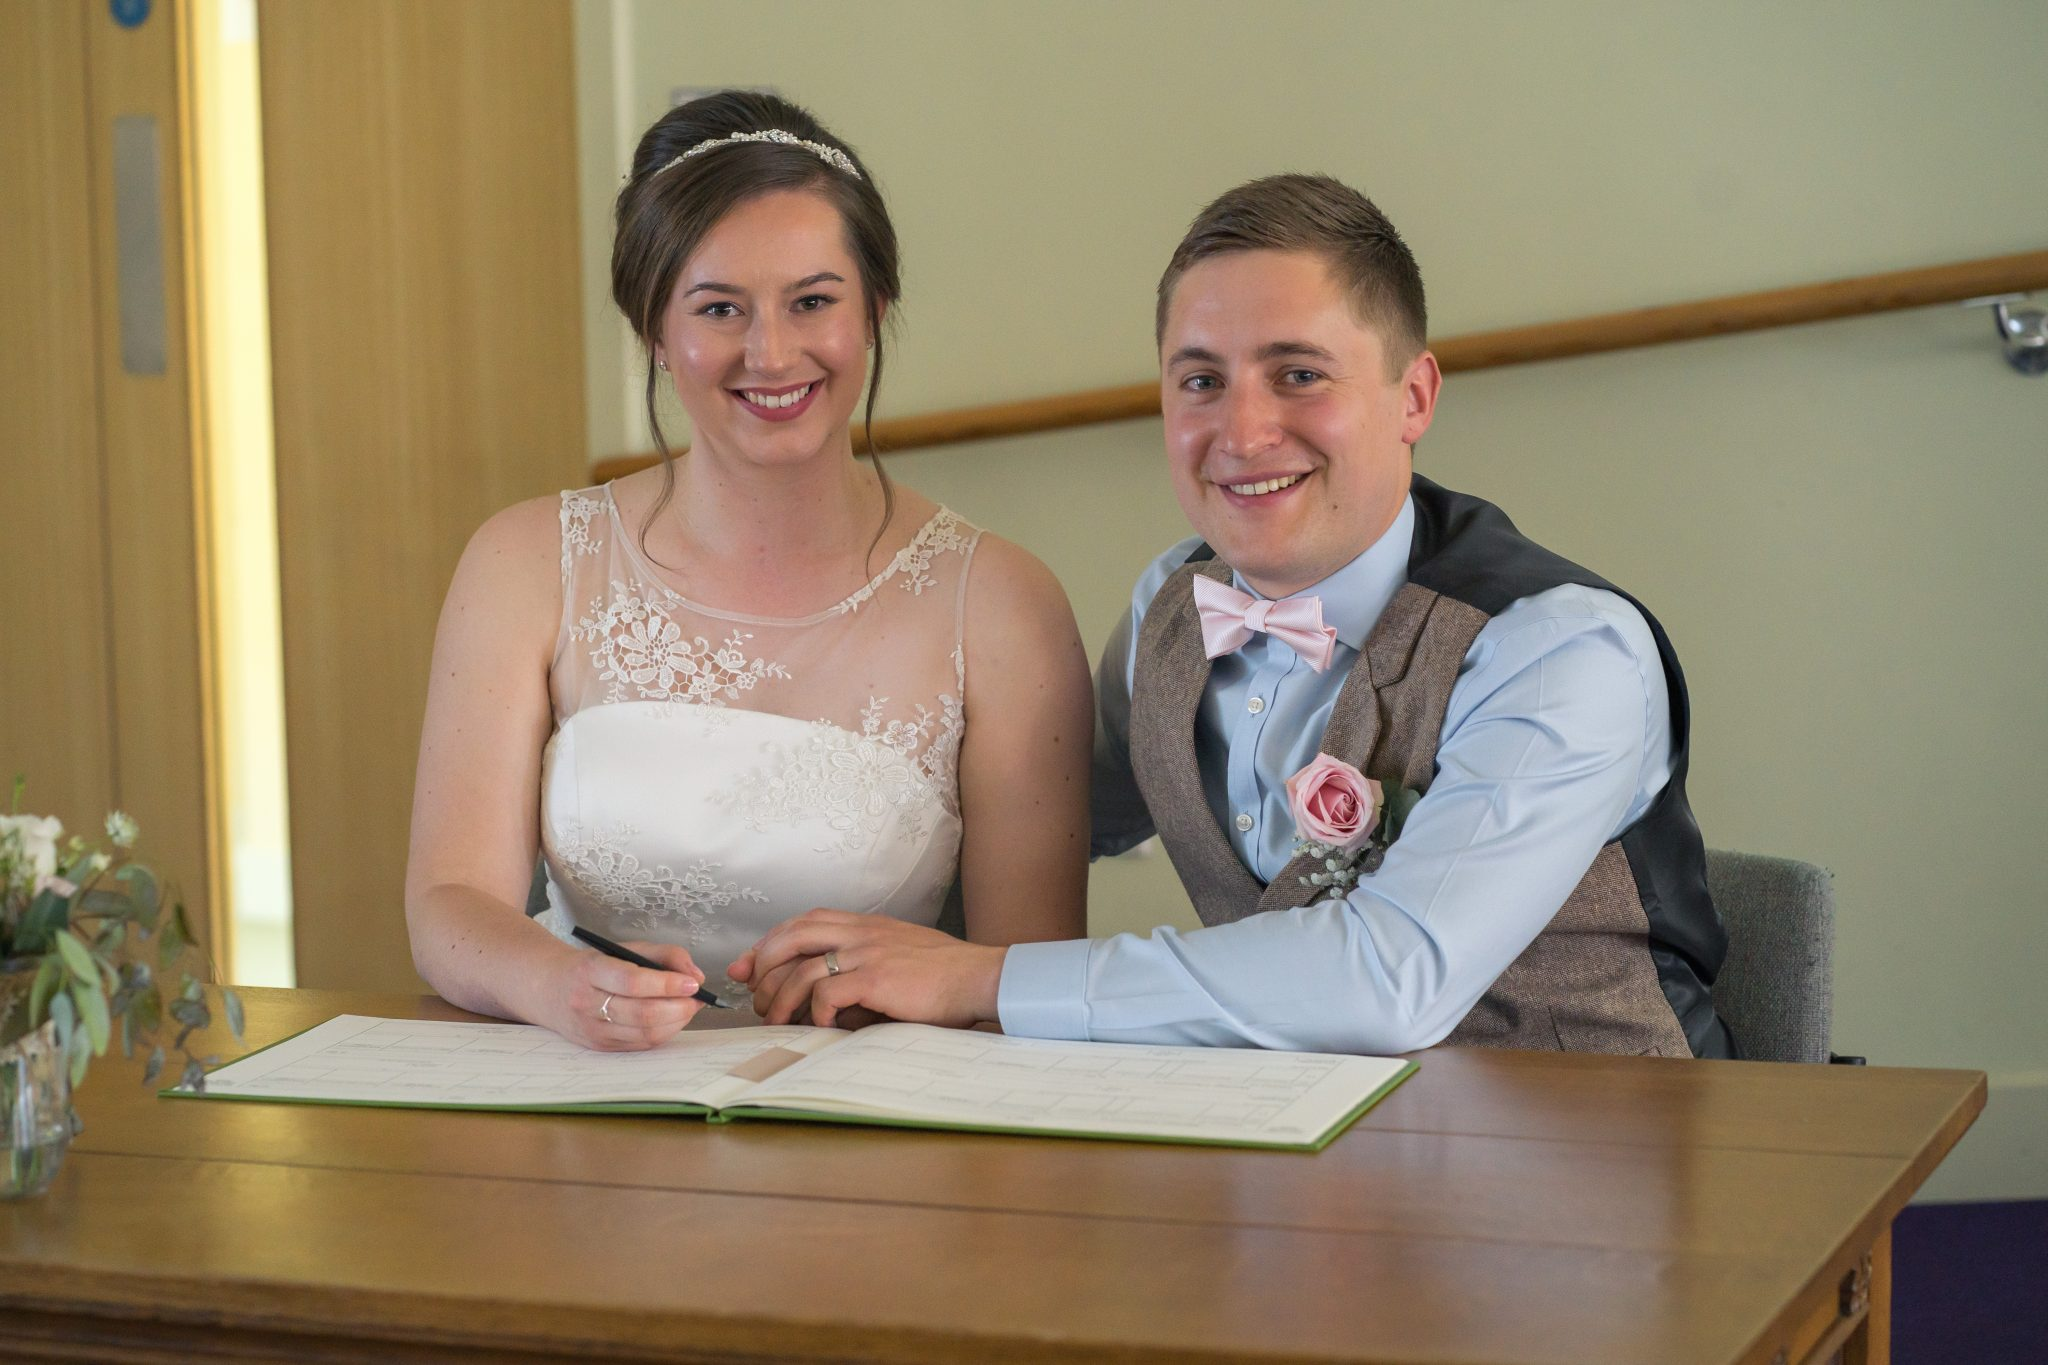 Documentary Wedding Photography - Signing the Register